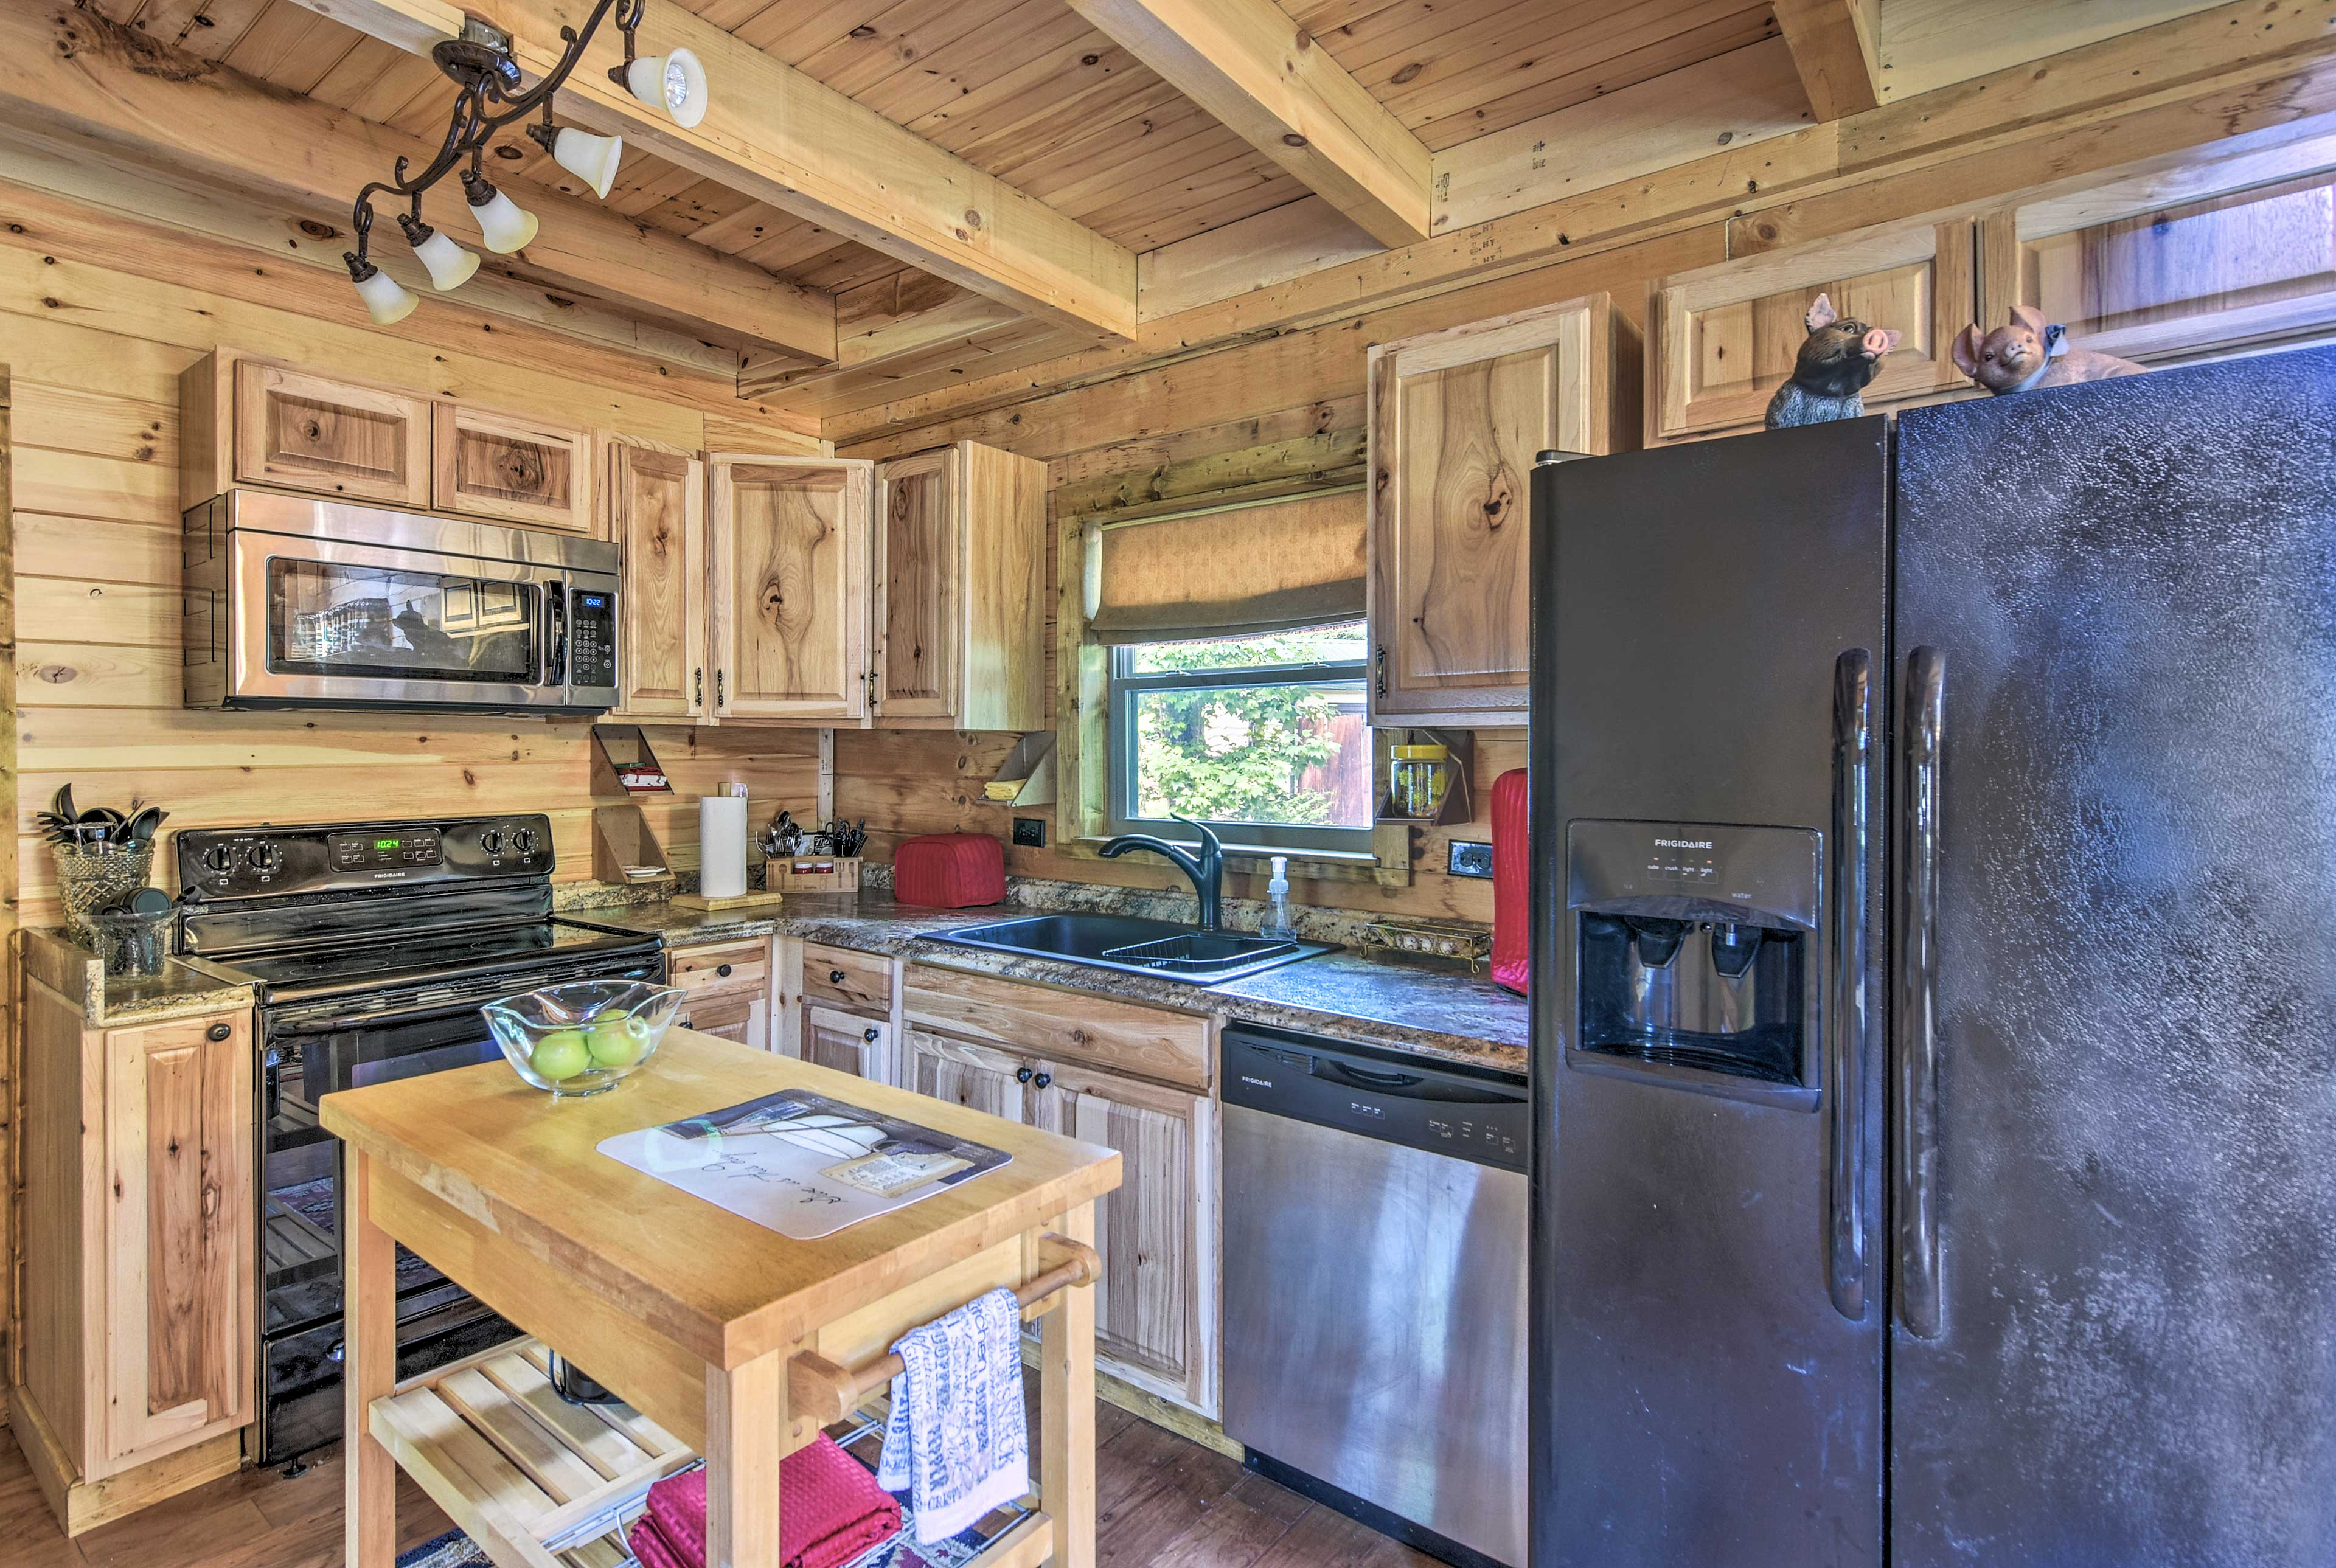 The kitchen island provides some extra space for meal prep.